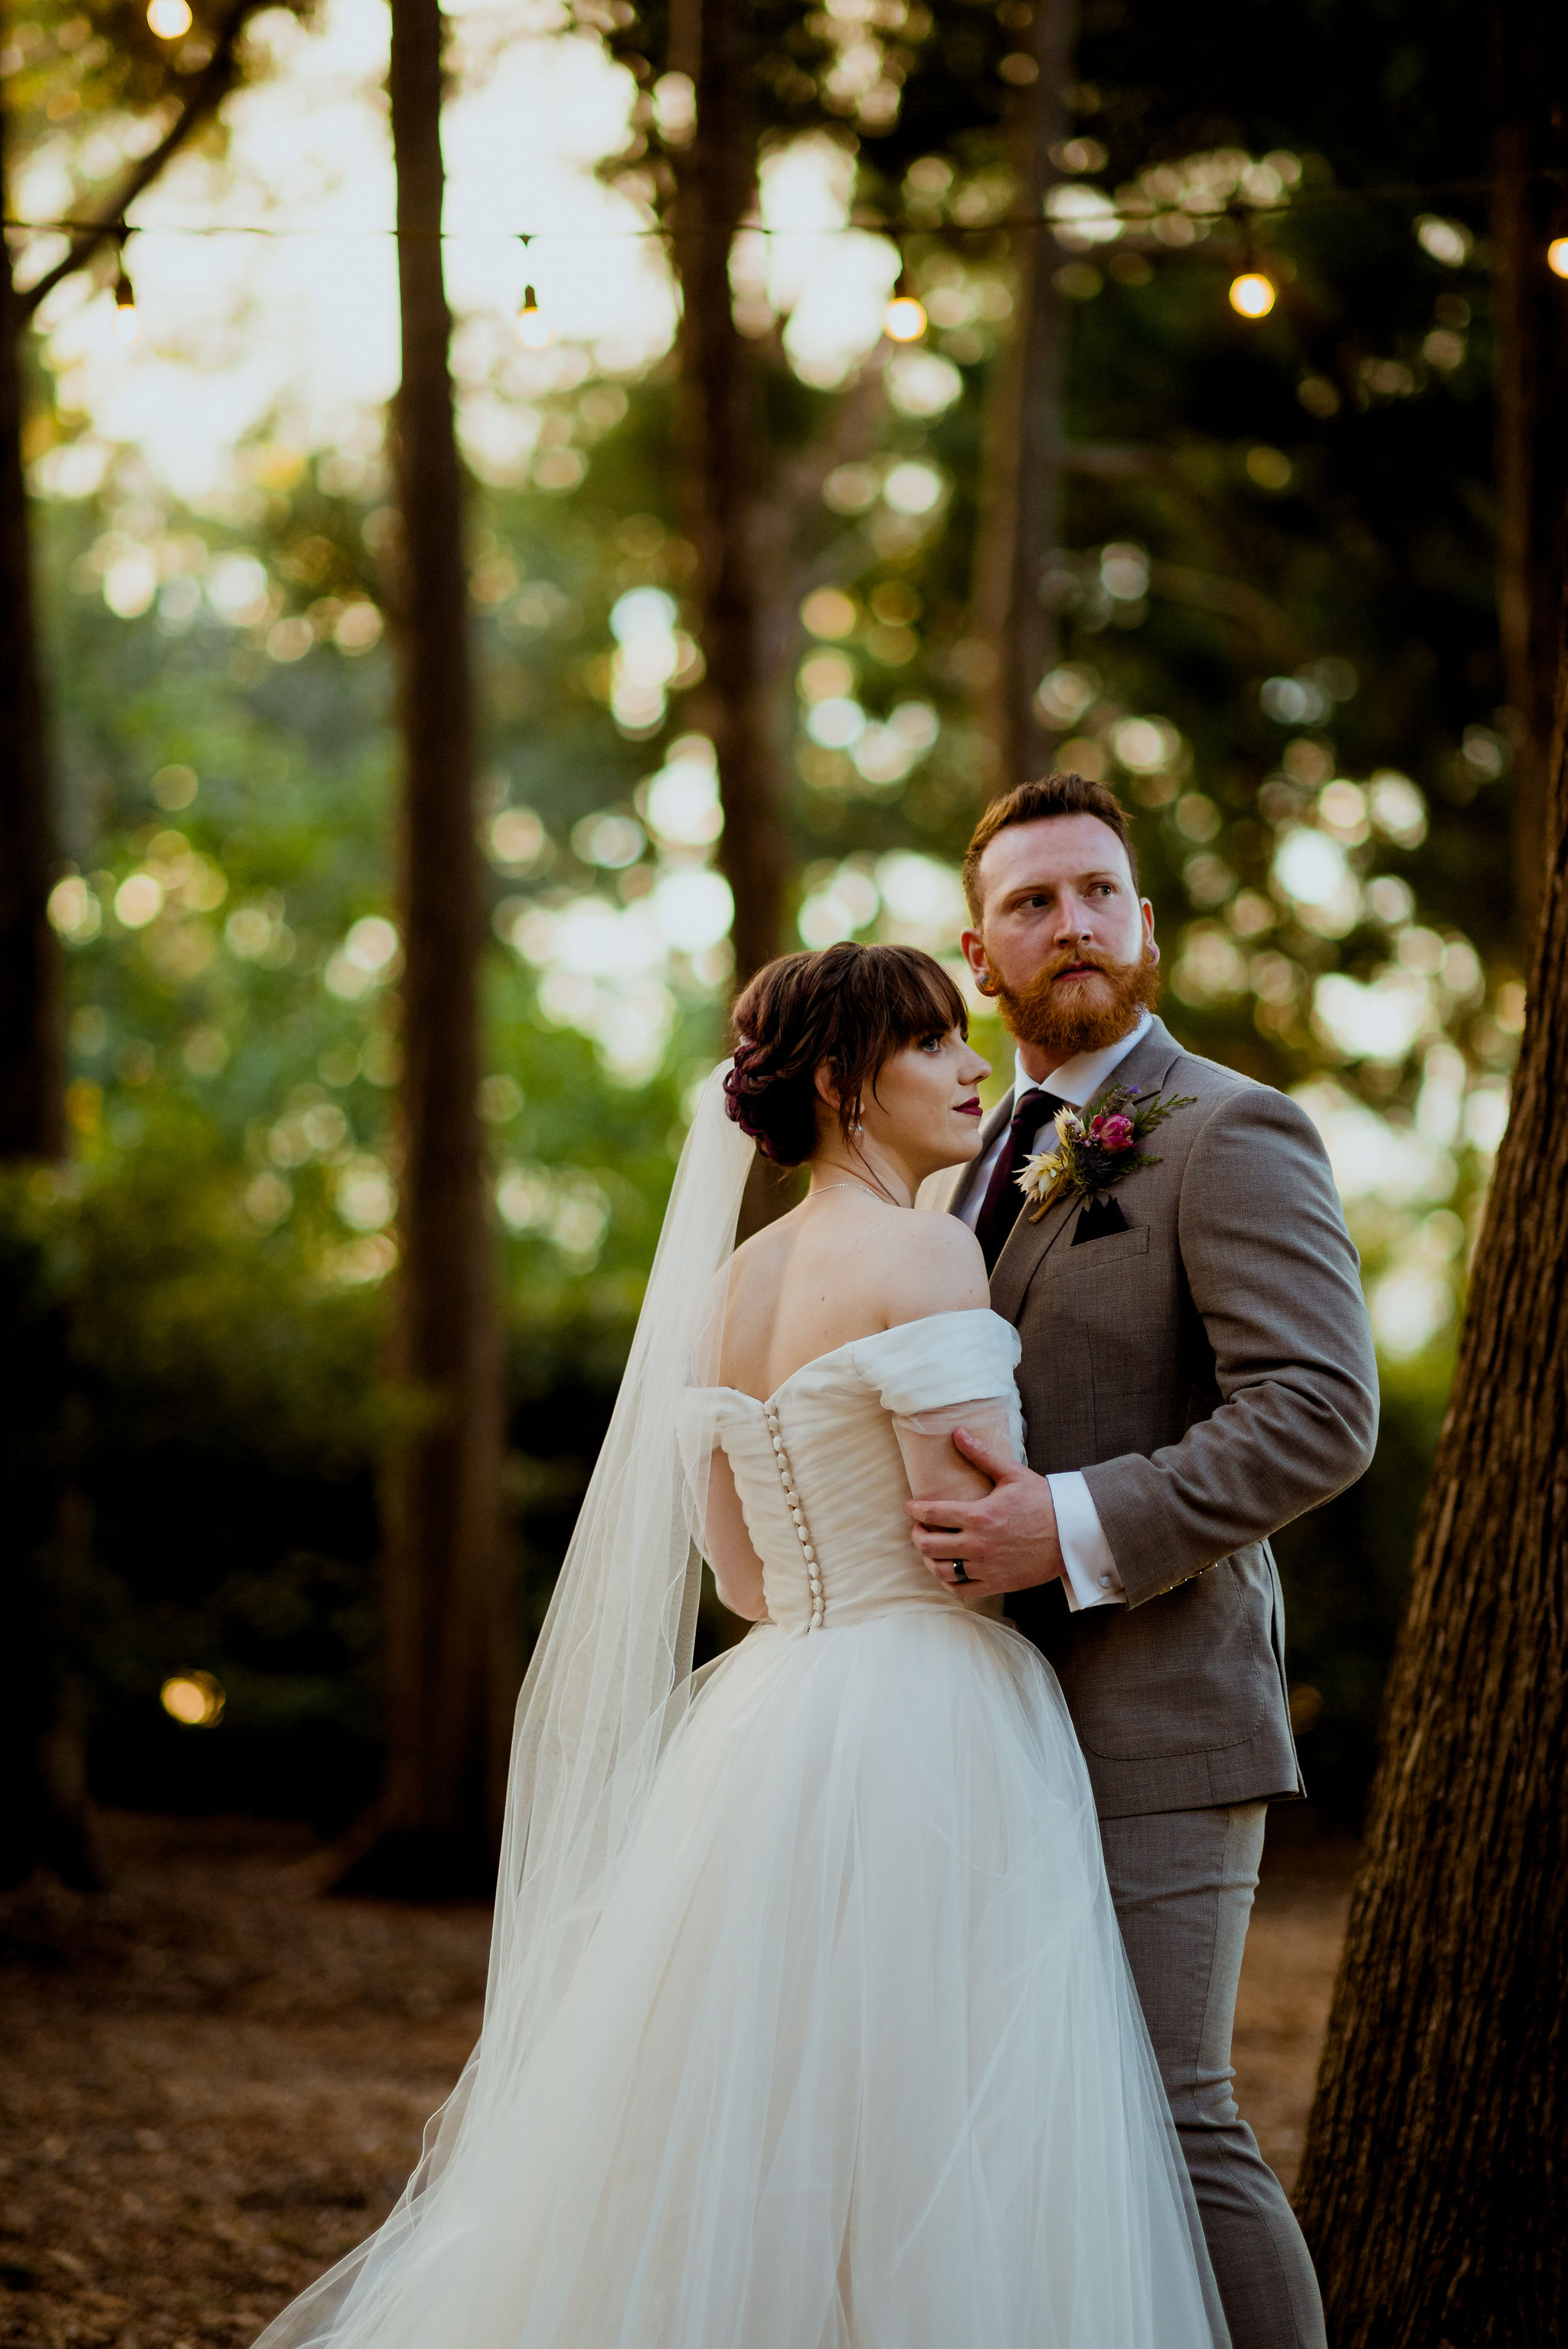 Bride and groom look off into the distance in a forest